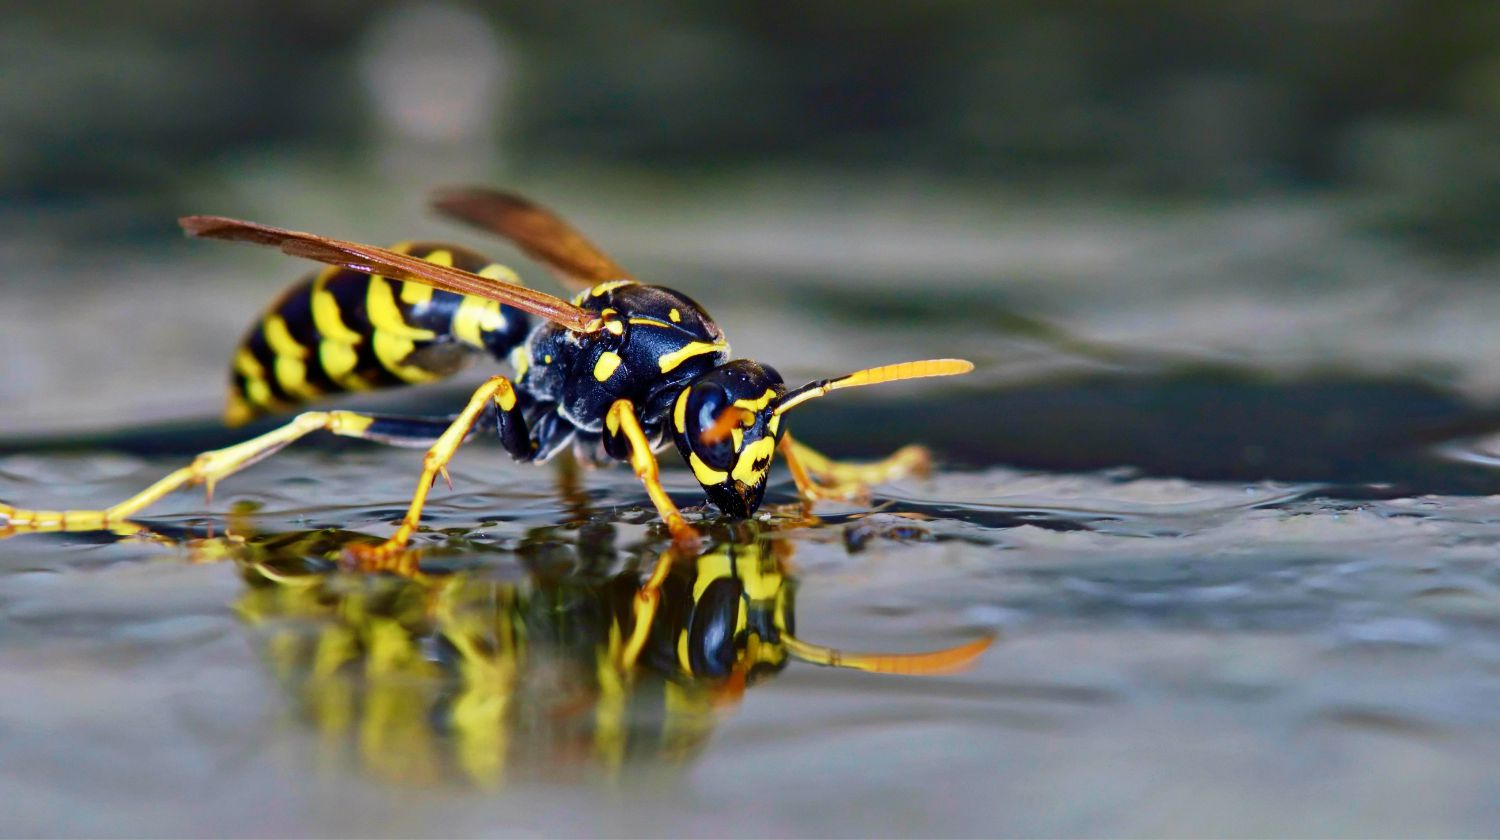 Polistes sp. wasp on water | Ways To Deter Wasps Naturally | Featured